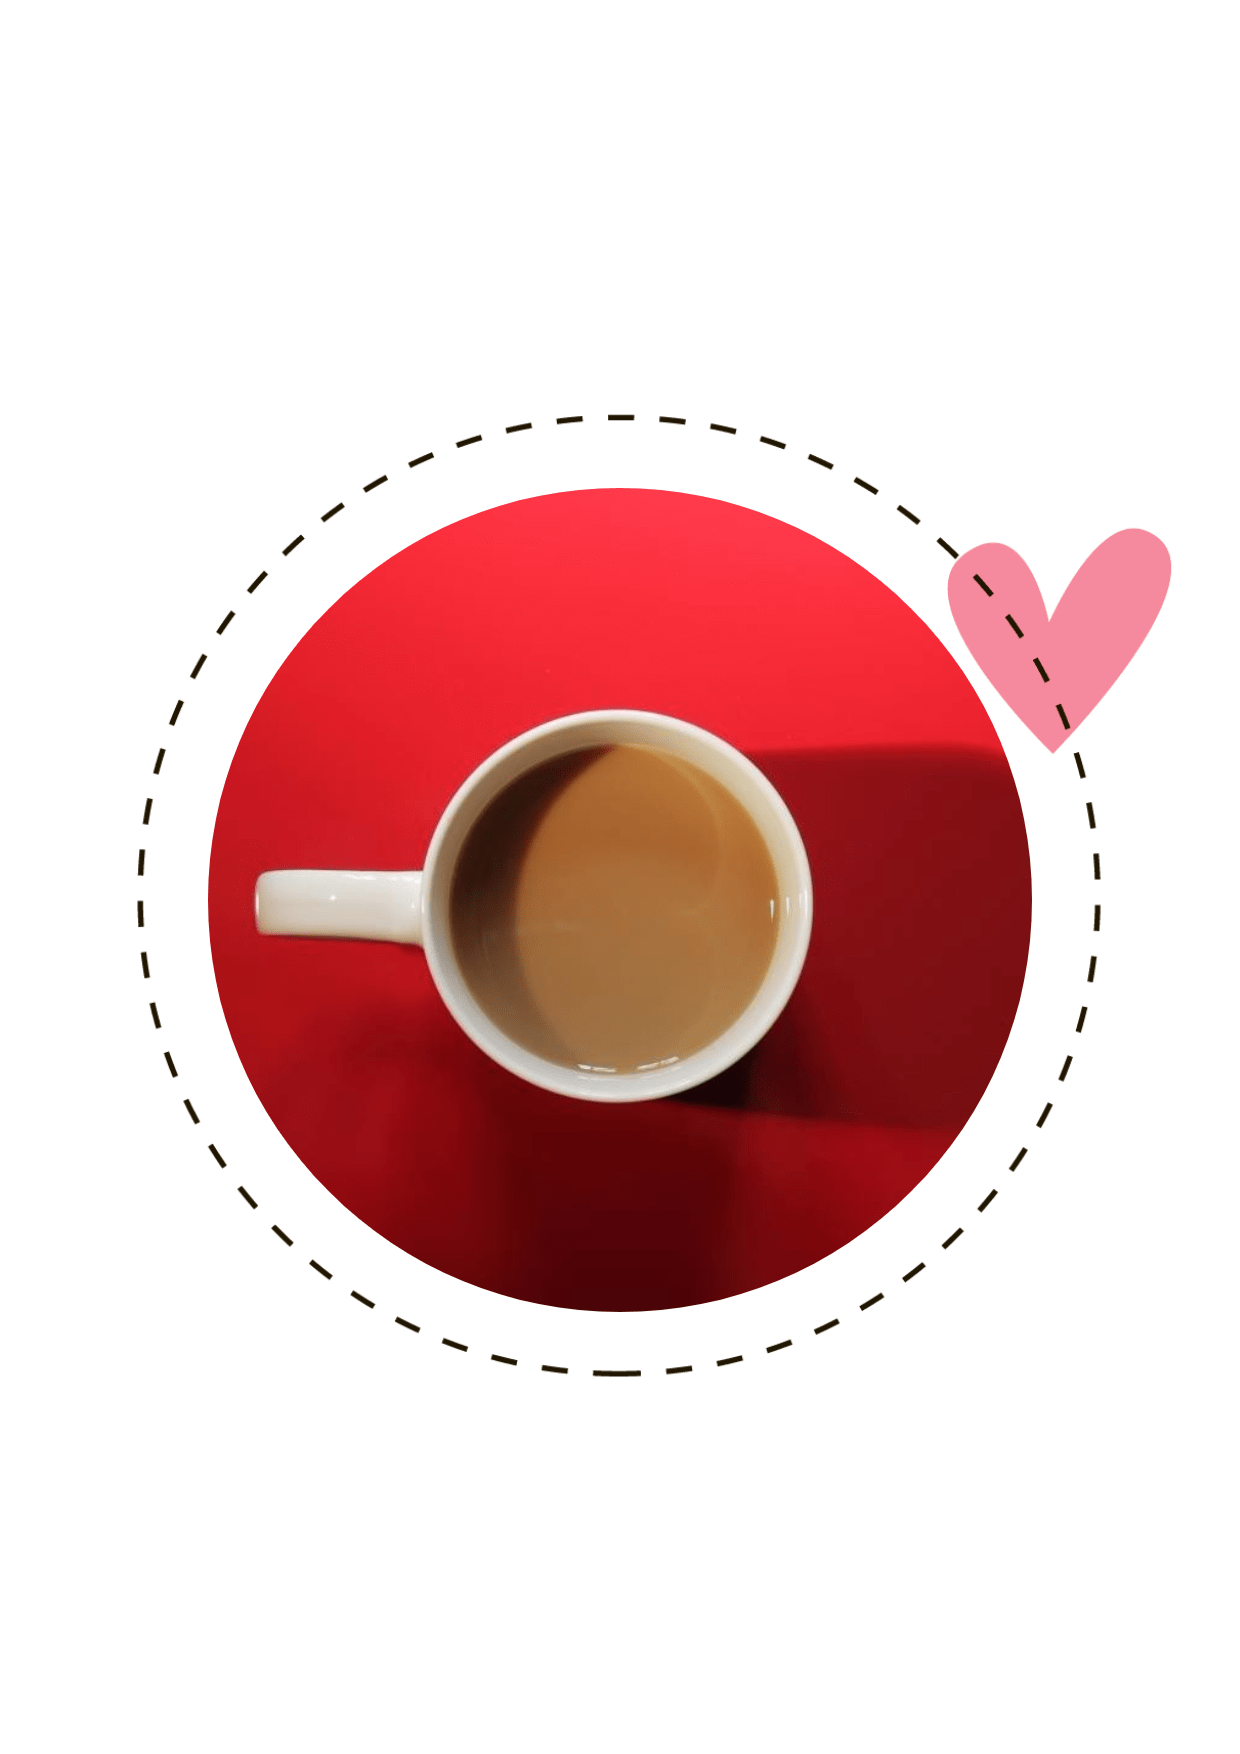 Cup,                Red,                Coffee,                Drink,                Heart,                Mockup,                Frame,                Image,                Avatar,                White,                 Free Image